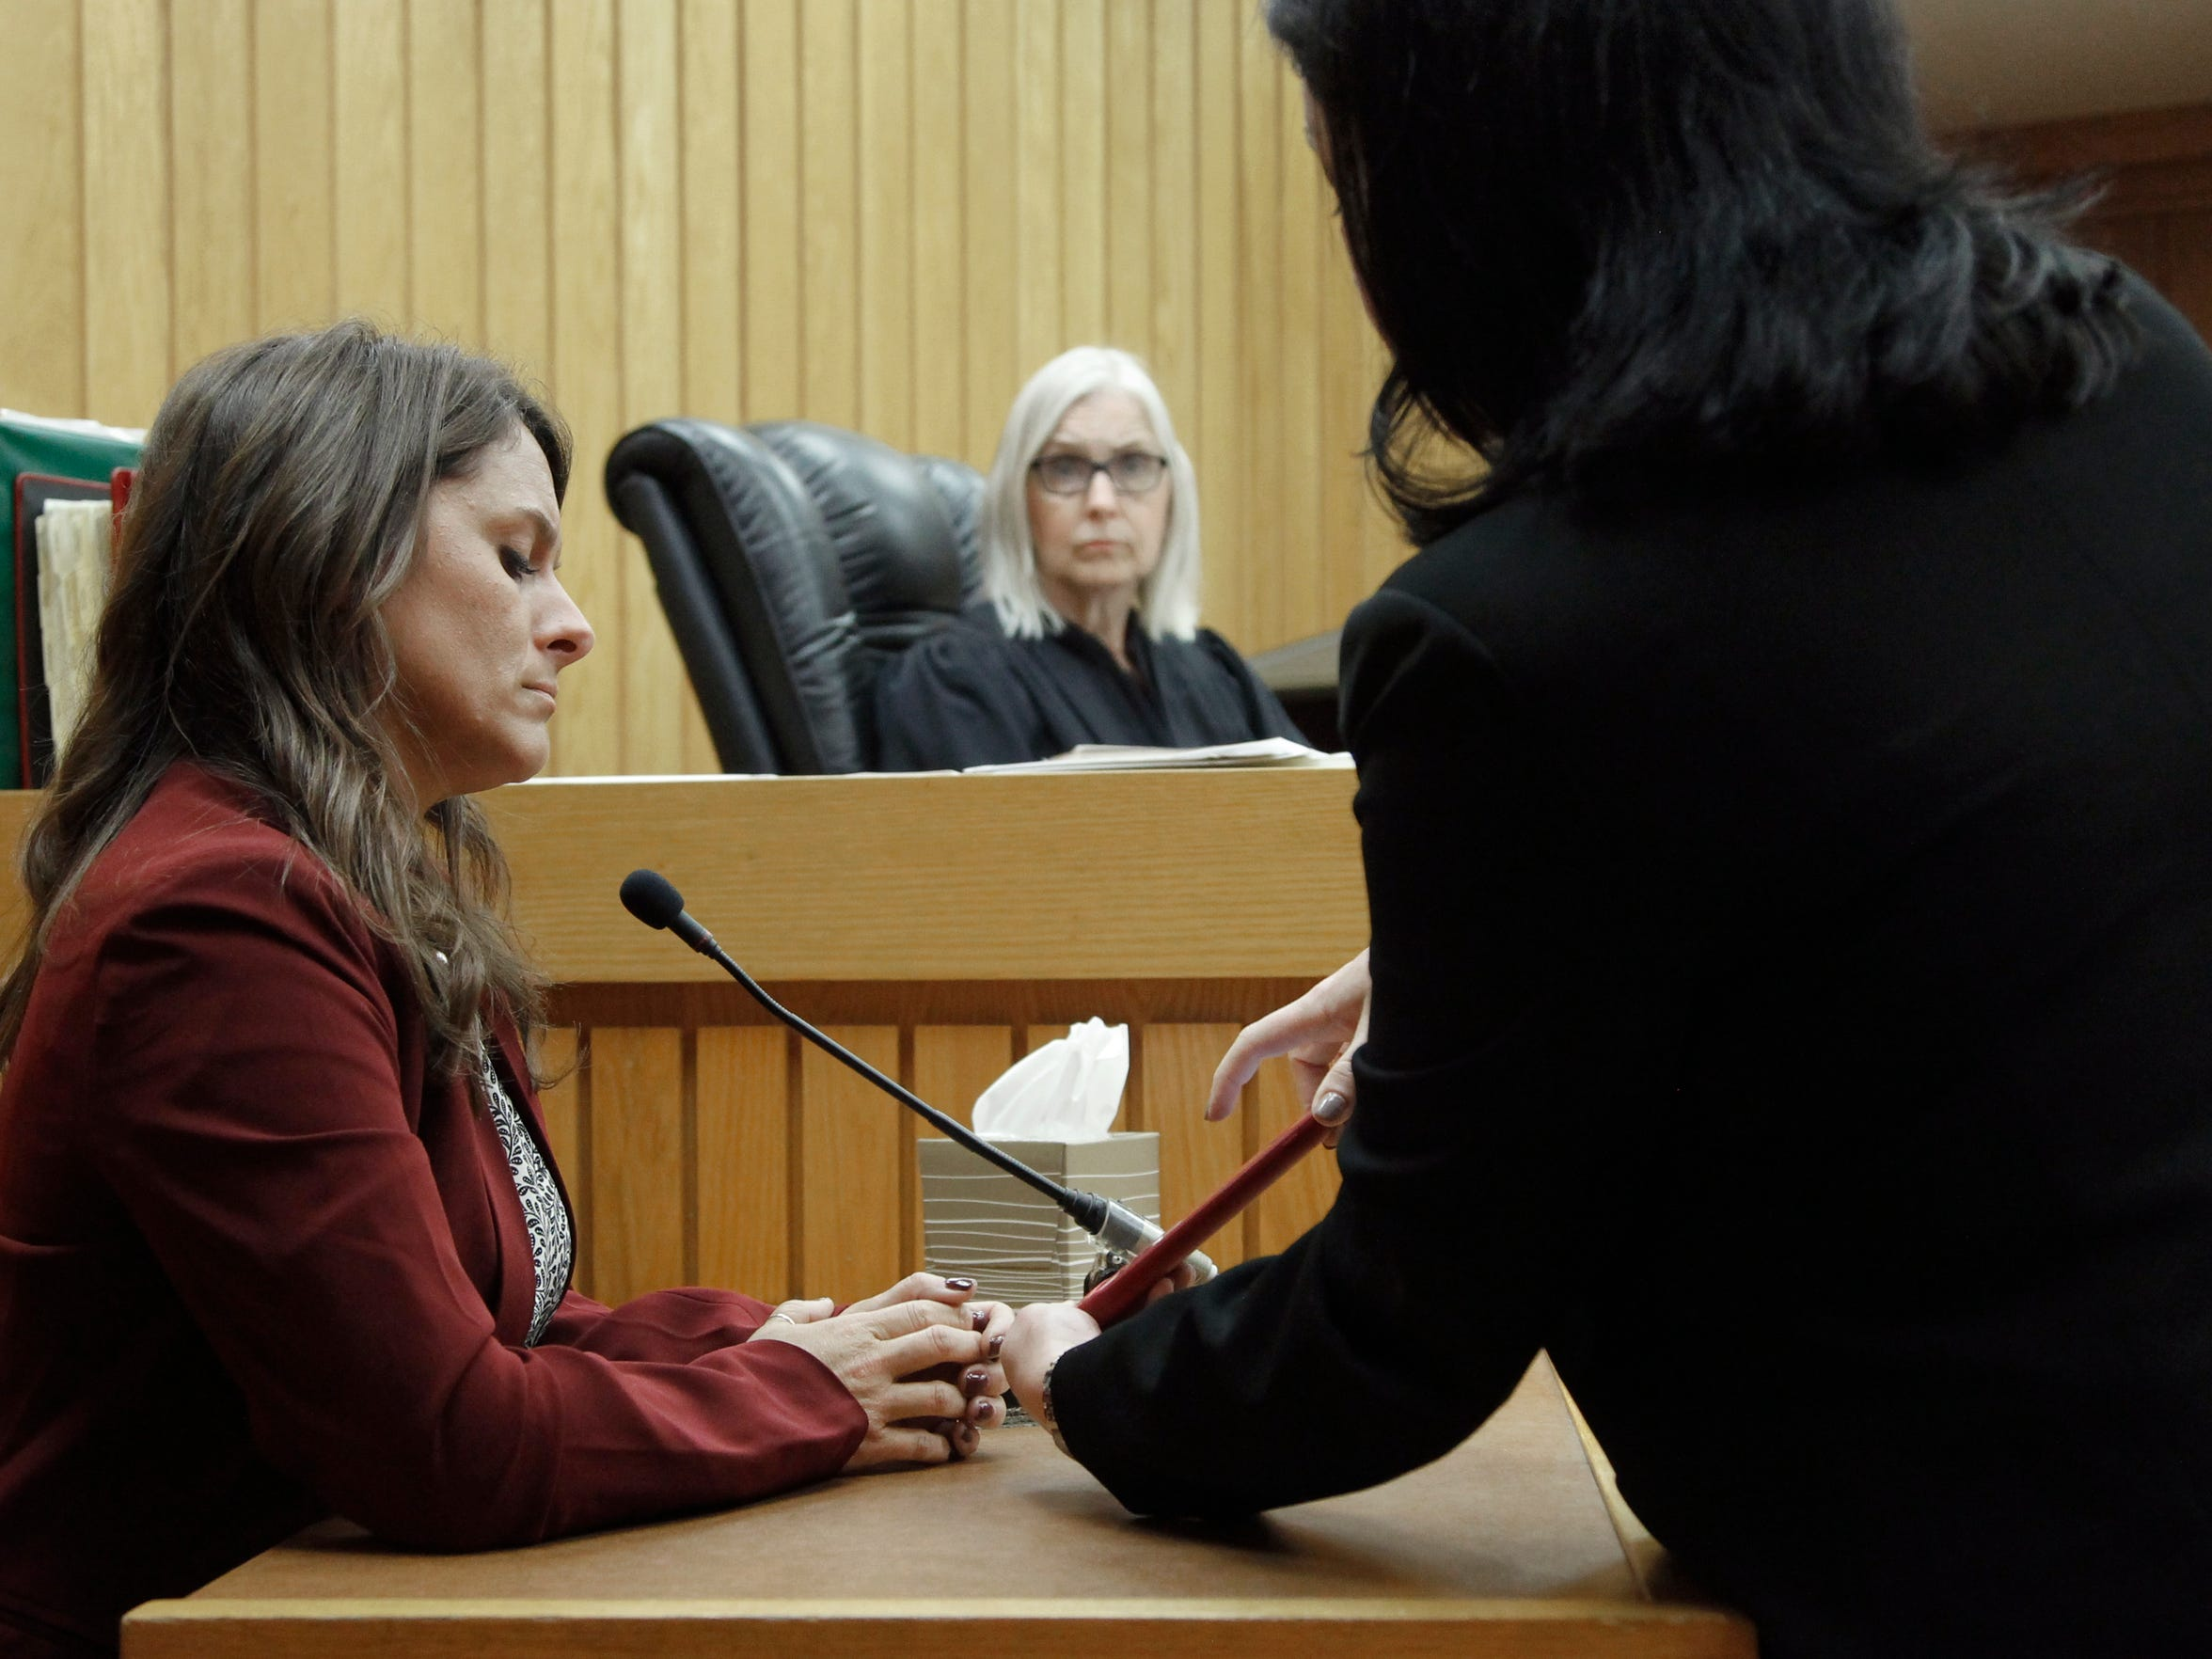 Shannon Smith, right, an attorney for Larry Nassar, questions Det. Lt. Andrea Munford on Friday, June 30, 2017, during Larry Nassar's preliminary hearing before Judge Julie Reincke in Eaton County District Court in Charlotte, Michigan.